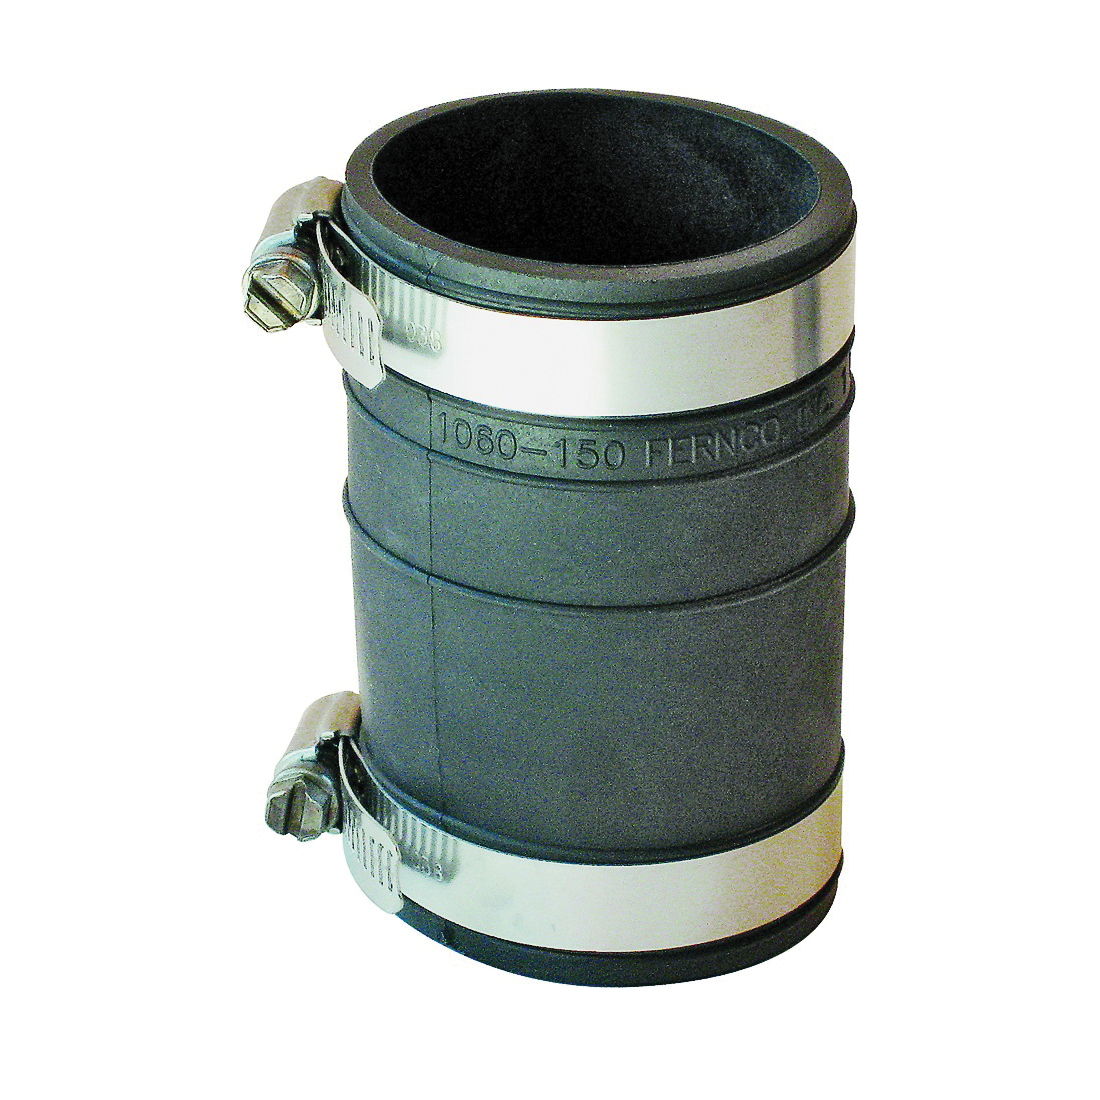 Picture of FERNCO P1060-150 Flexible Pipe Coupling, 1-1/2 in, Socket, PVC, Black, 4.3 psi Pressure